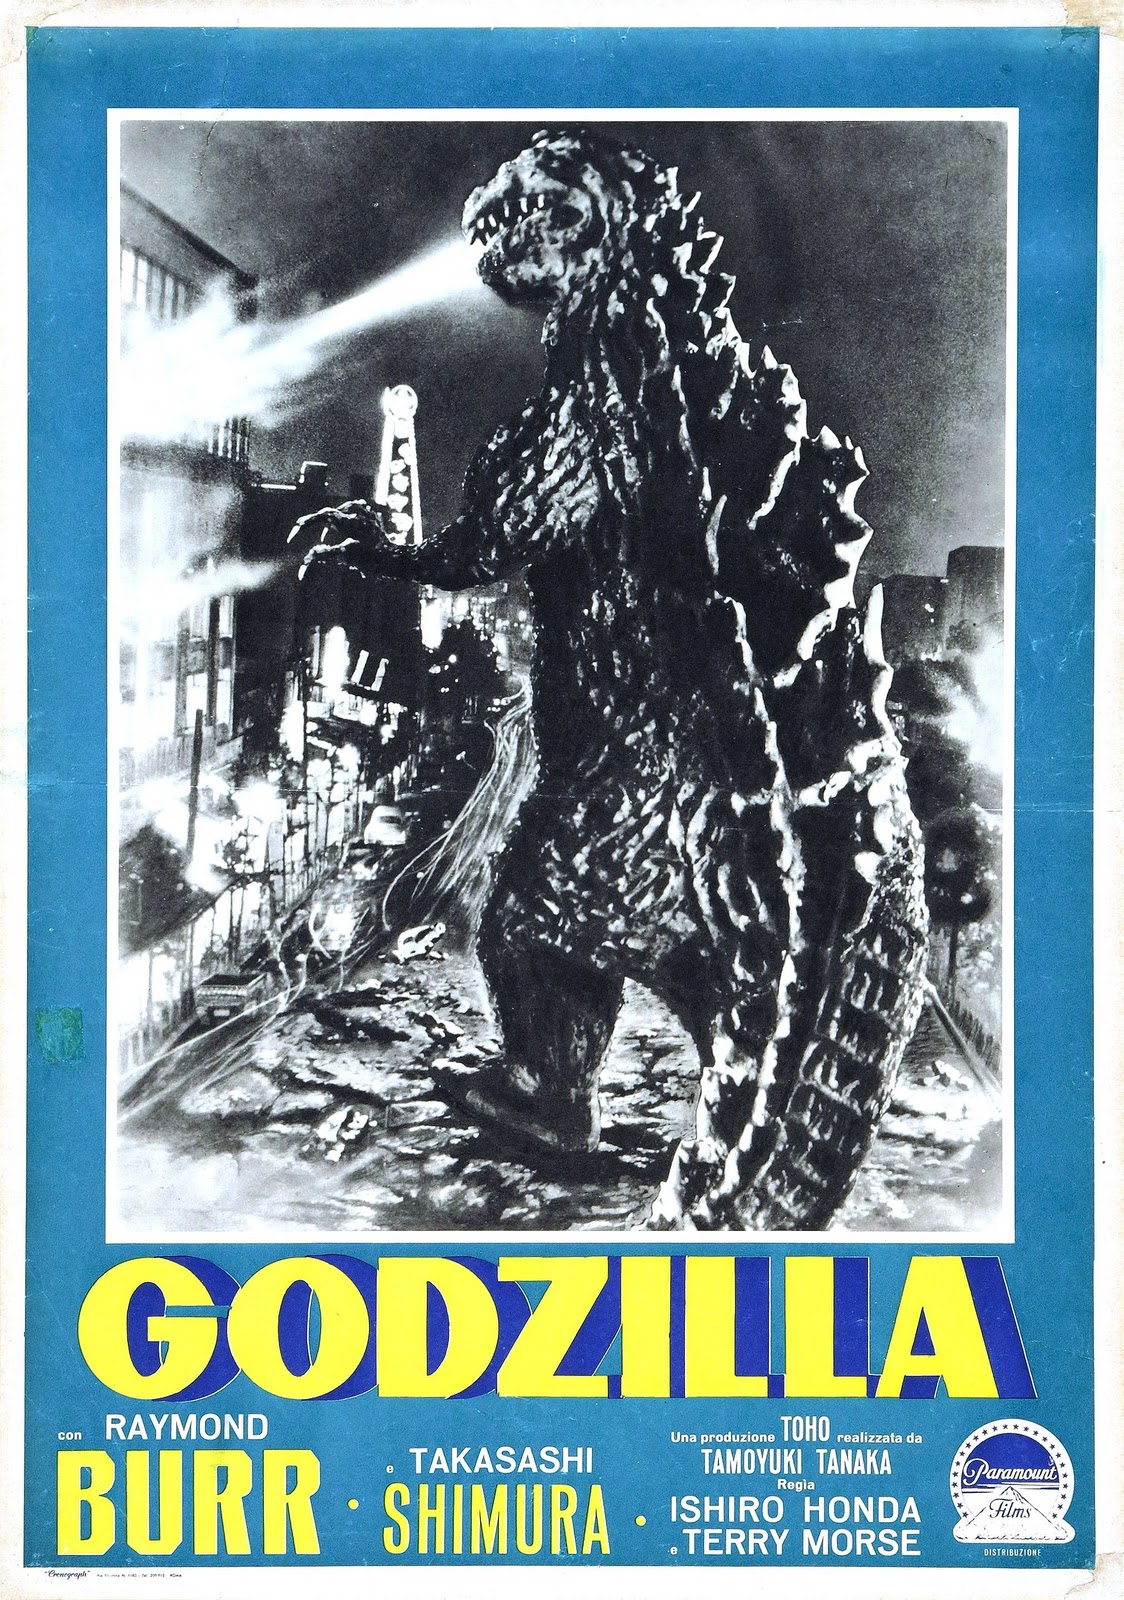 gojira 1954 and godzilla 1998 film studies essay Mark anderson in his essay mobilizing gojira: mourning modernity as  monstrosity explains  1956 poster for the american production godzilla: king  of the monsters at the time, gojira (1954) was the most expensive film ever   the creature in godzilla (1998) was so far removed from the original in both.